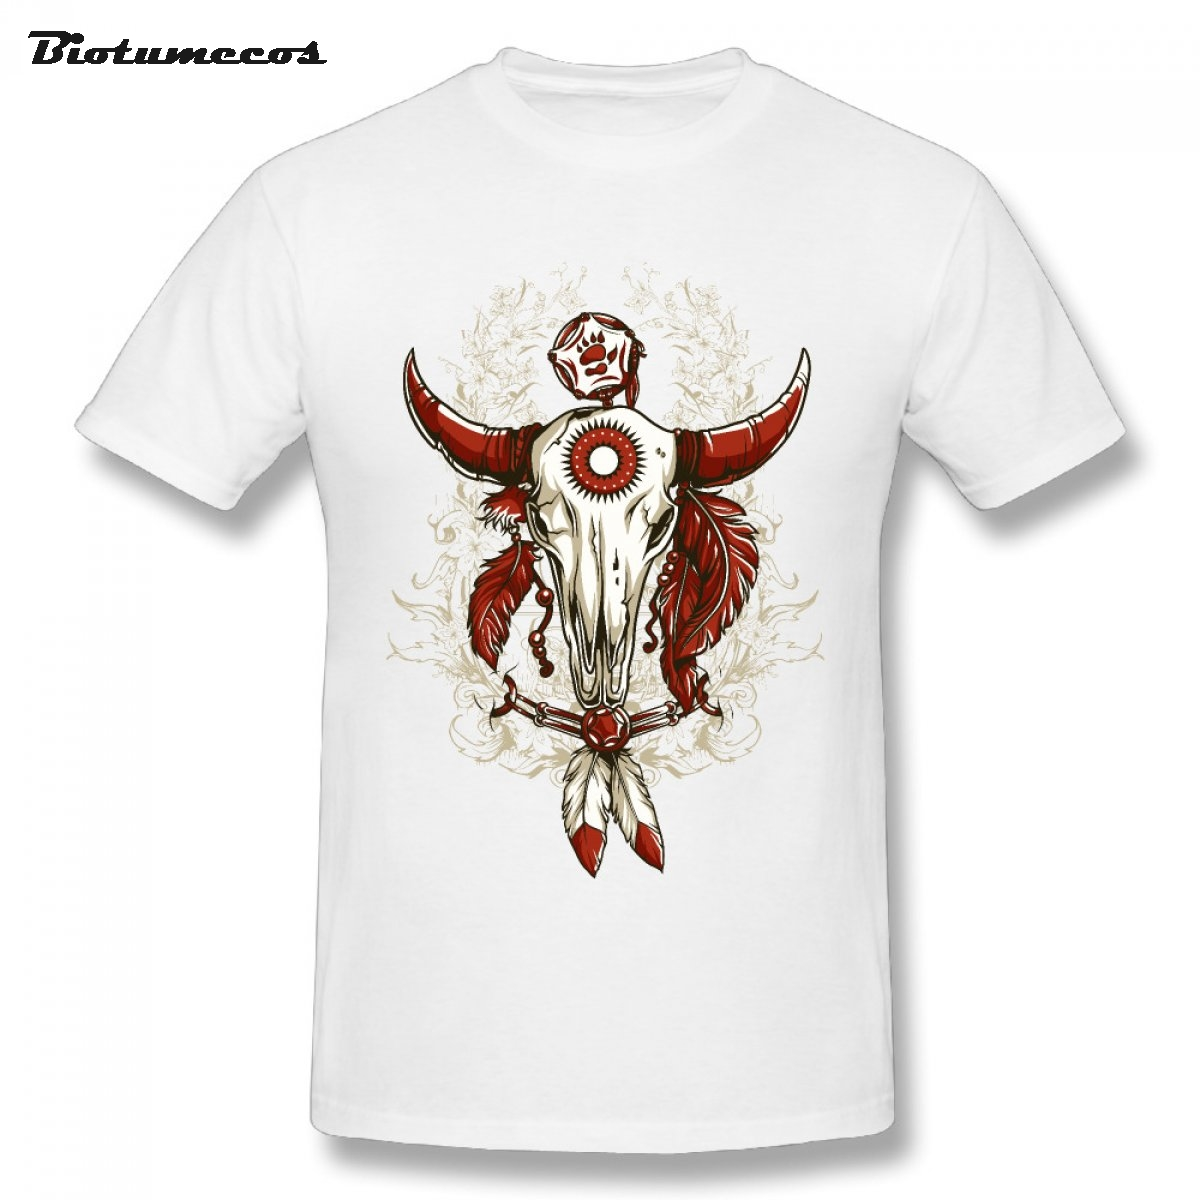 Summer Men T shirt Goat Skull Tied With Shackle Red Horns Printed Short  Sleeve O-neck 100% Cotton Tees Shirt Top Clothing MTK151 8bc35856ca